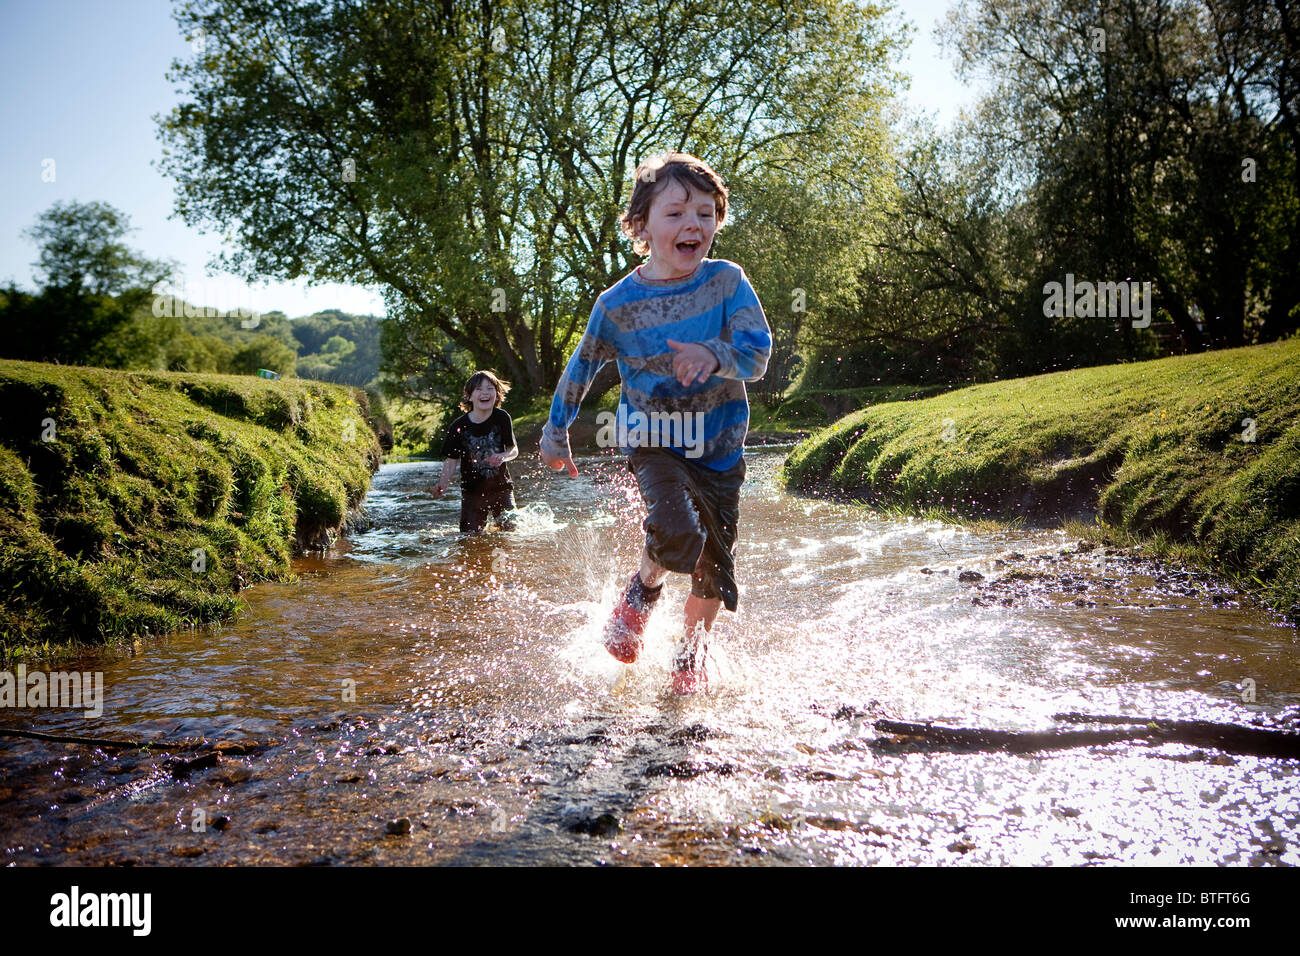 Two boys running in stream - Stock Image